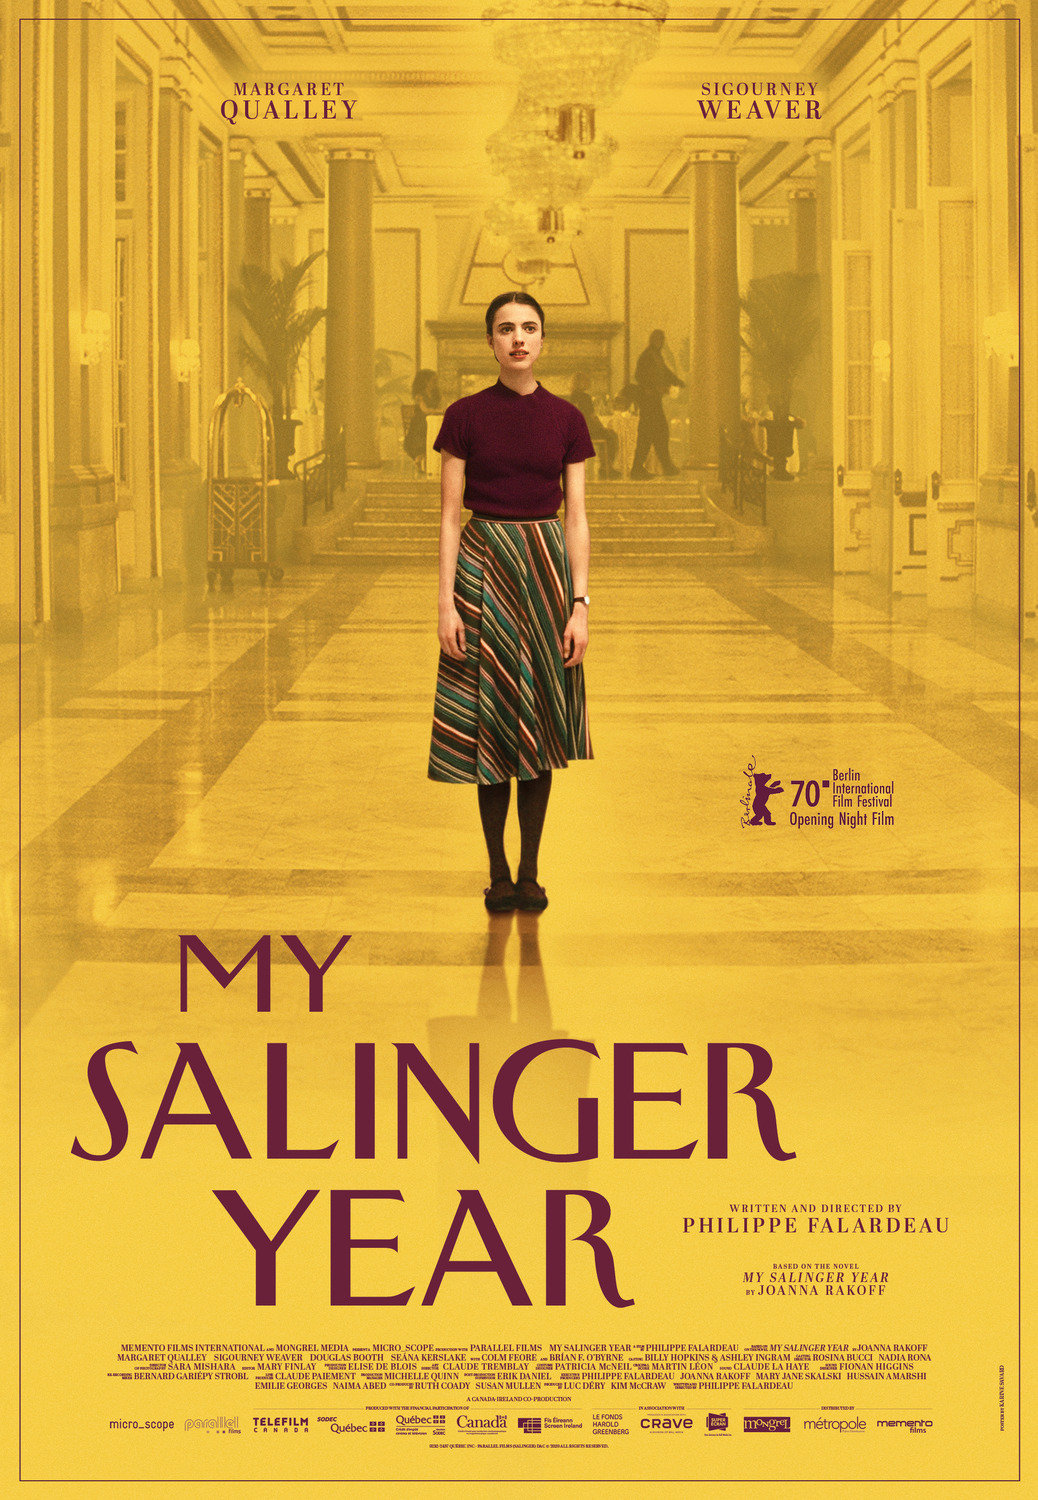 My Salinger Year (2020) poster image